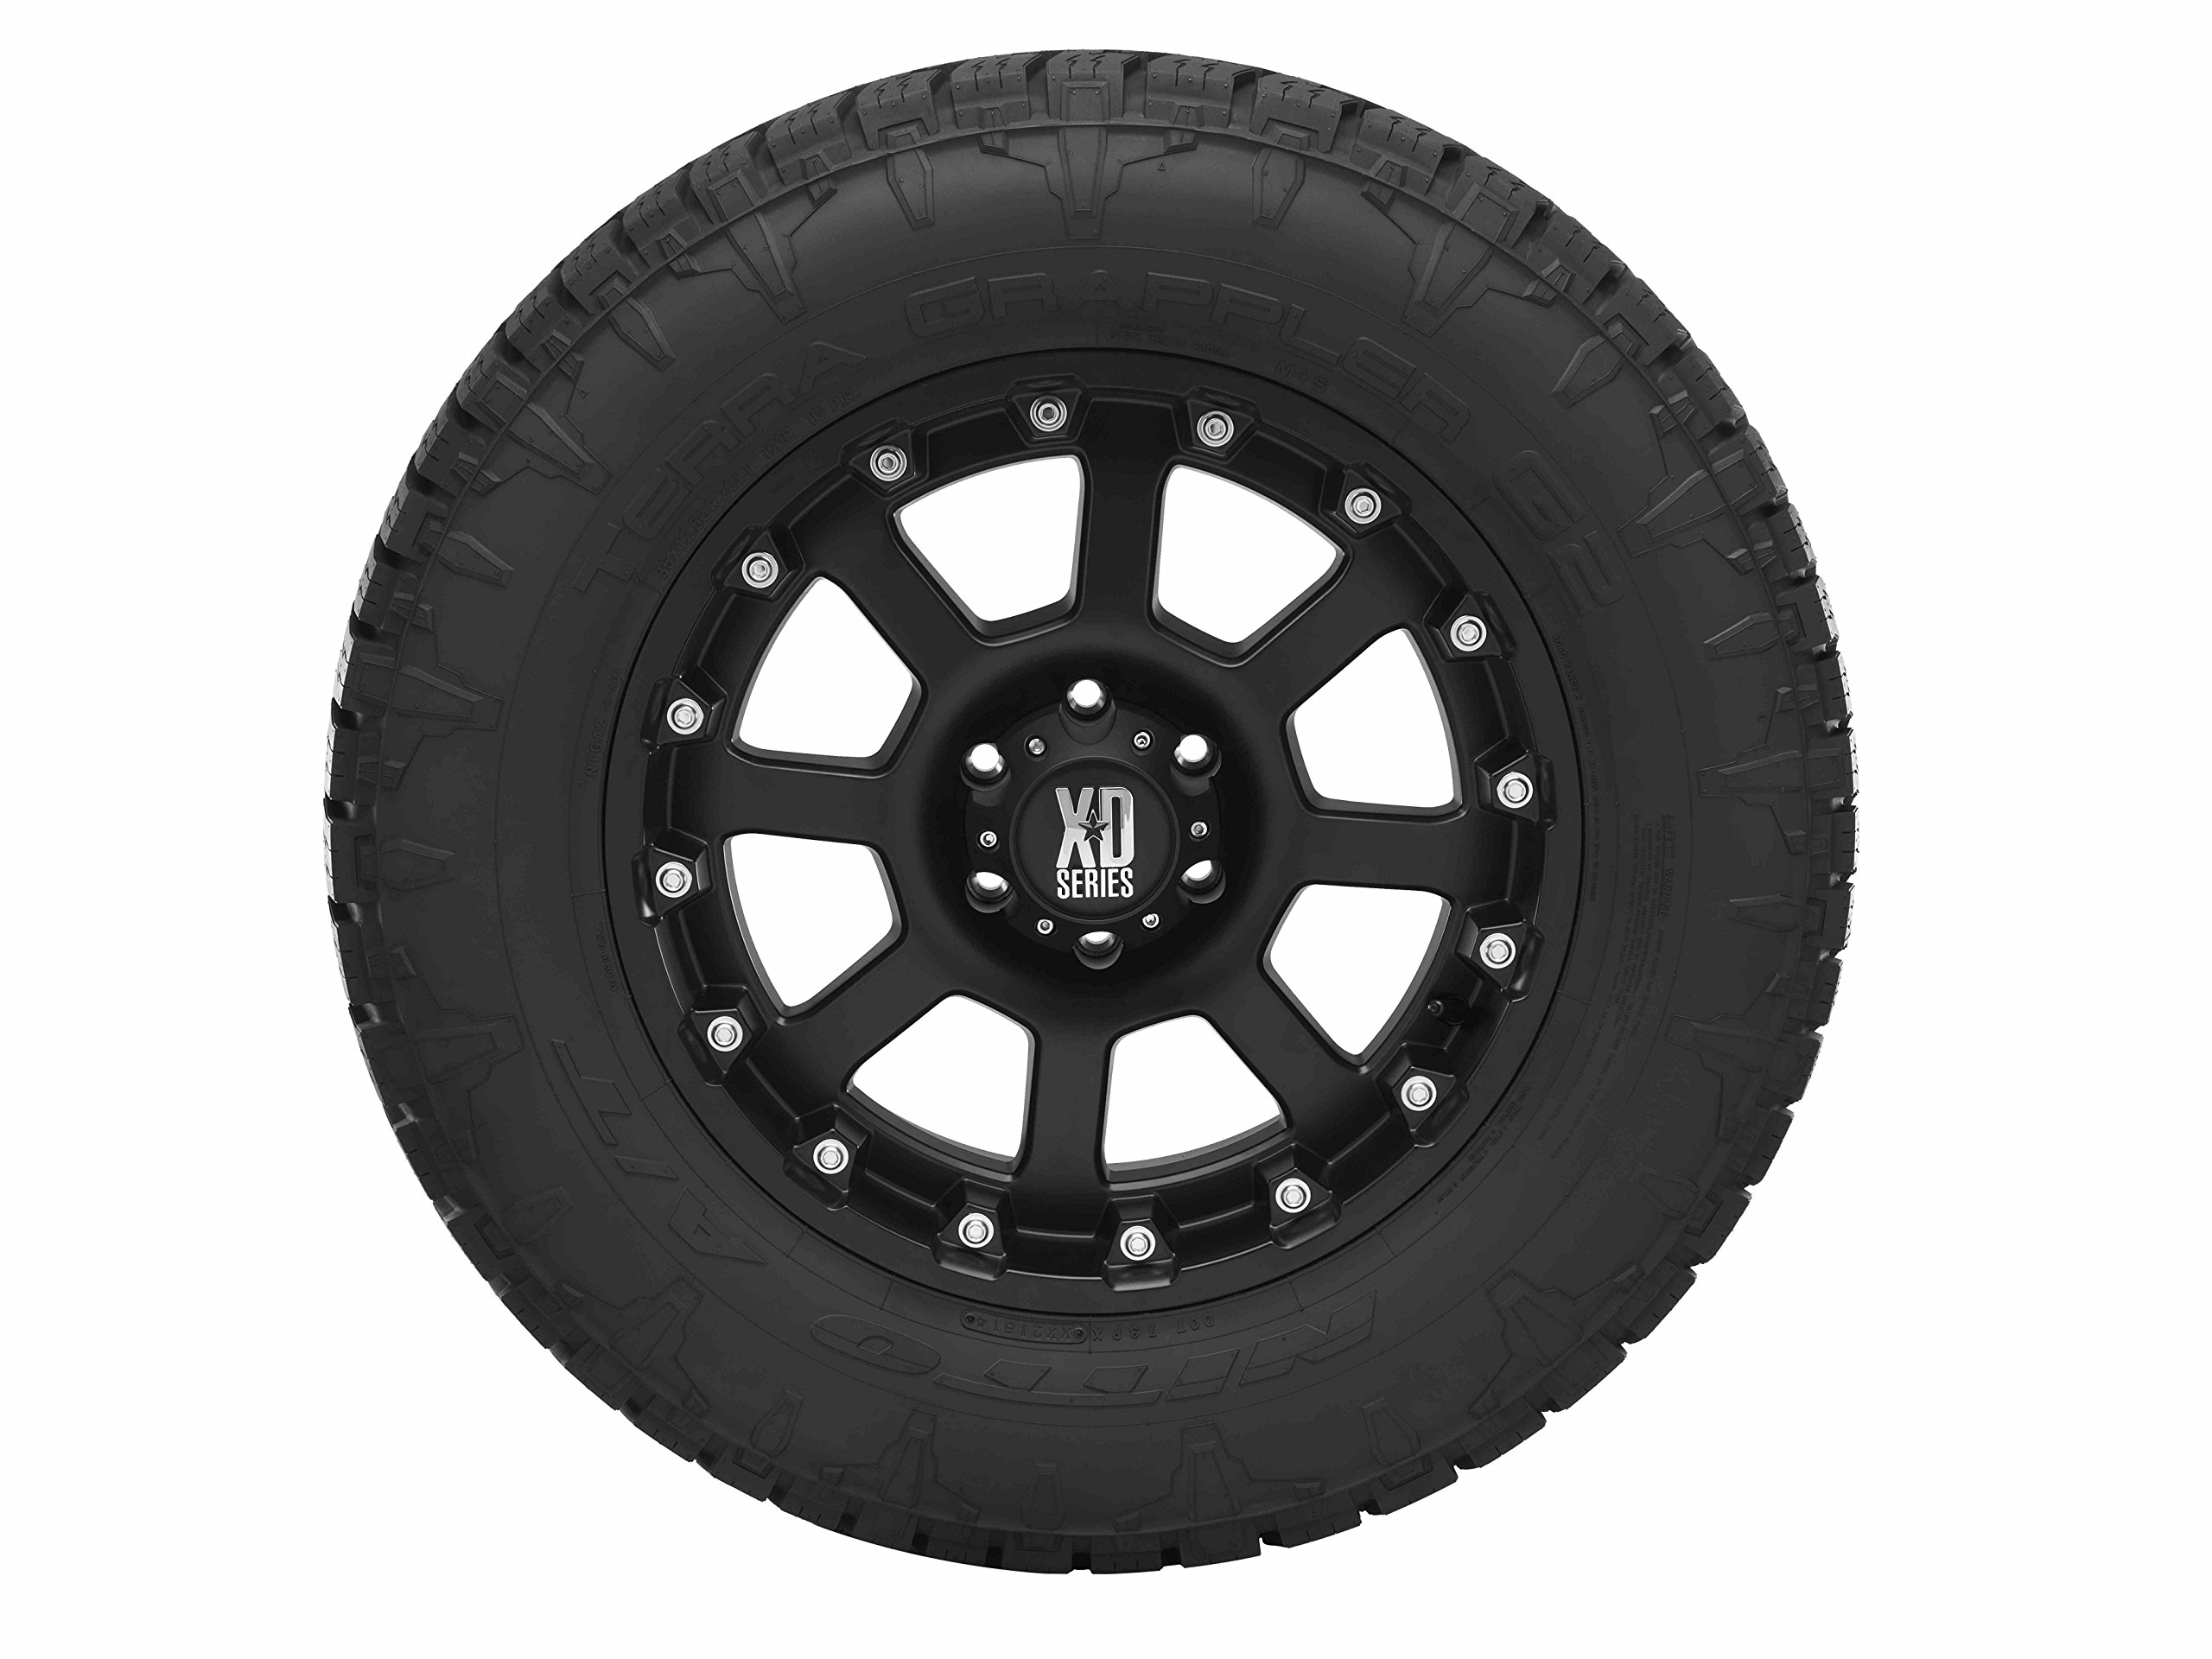 Nitto Terra Grappler G2 Traction Radial Tire - 275/55R20 117T by Nitto (Image #2)